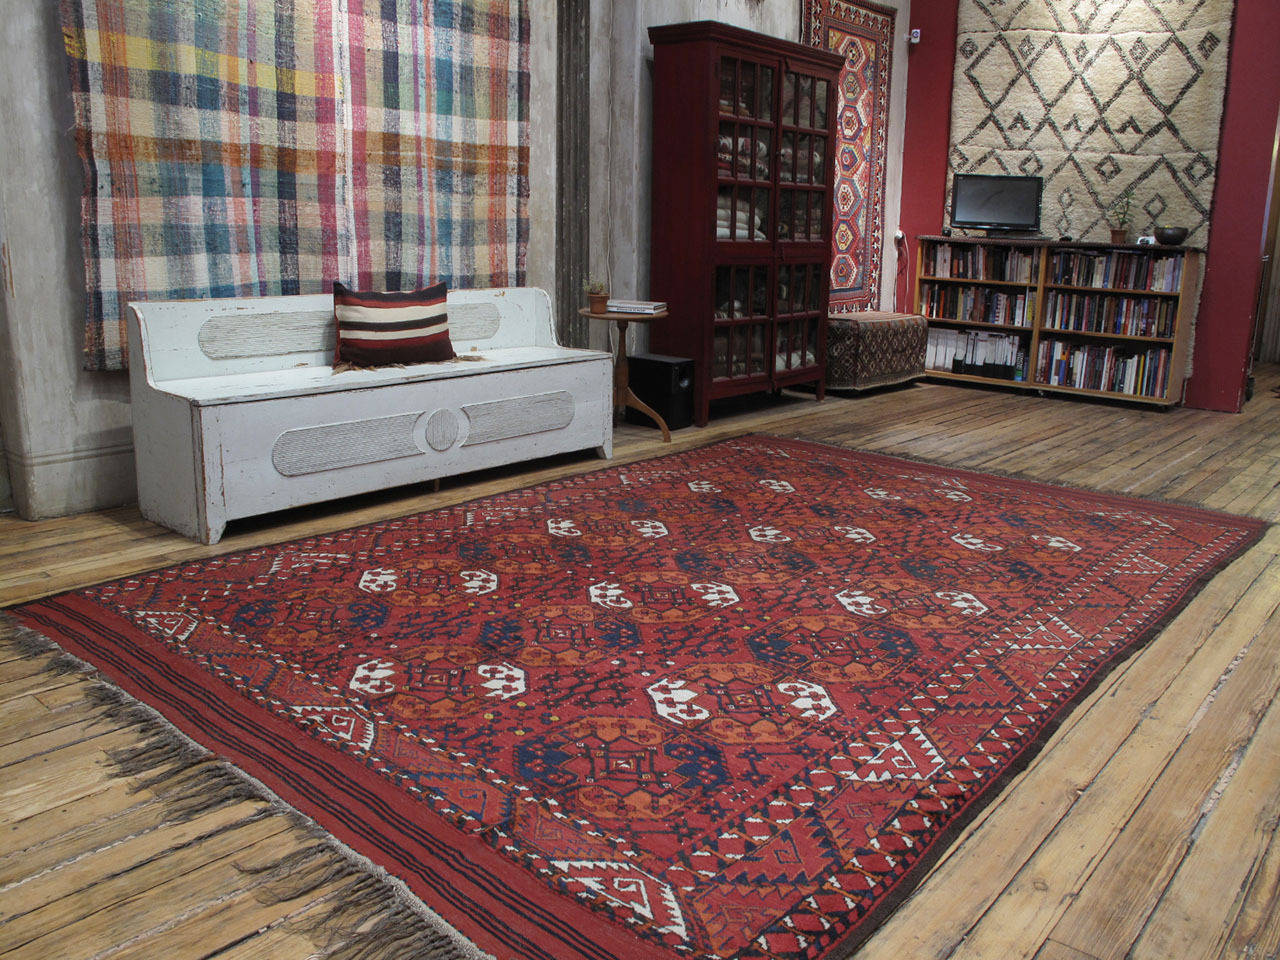 Antique Turkmen Main carpet or rug. A large antique carpet or rug of collectible quality, woven by the Ersari Turkmen tribes in Central Asia, featuring the classical design of this group. Larger than usual, with brilliant natural dyes, this carpet